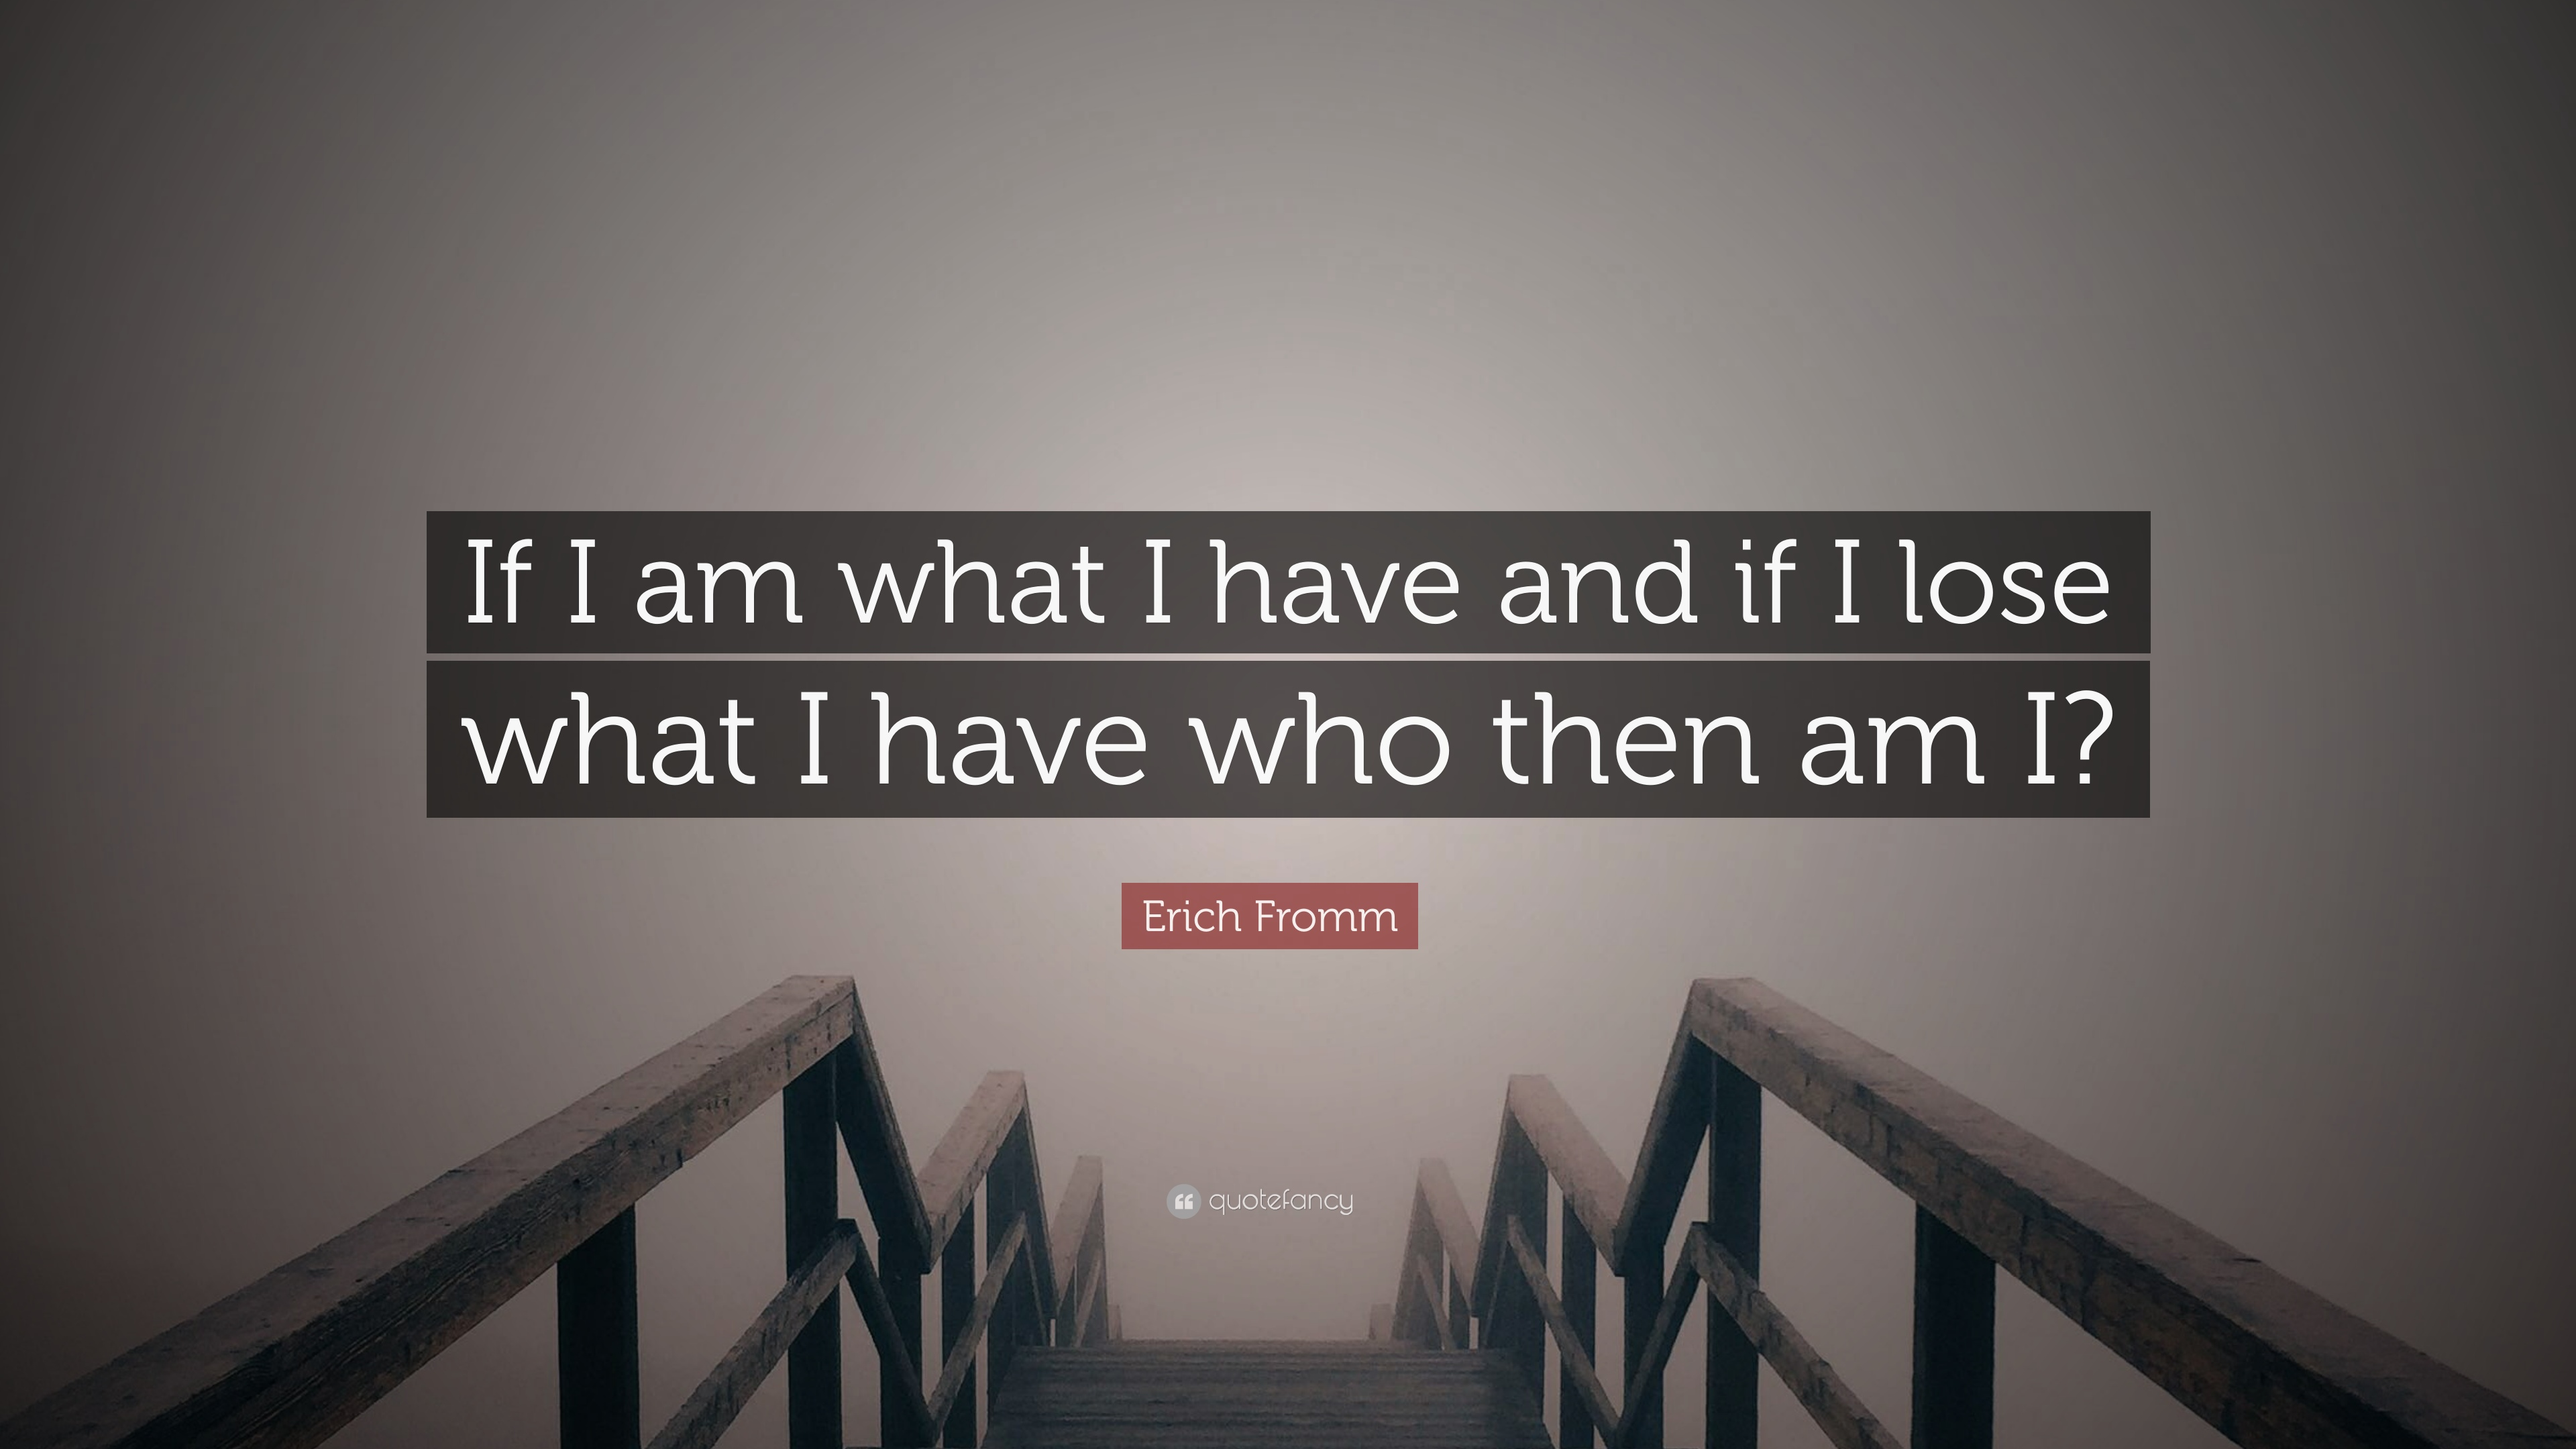 Am What Fromm Have If Quotes I I Erich